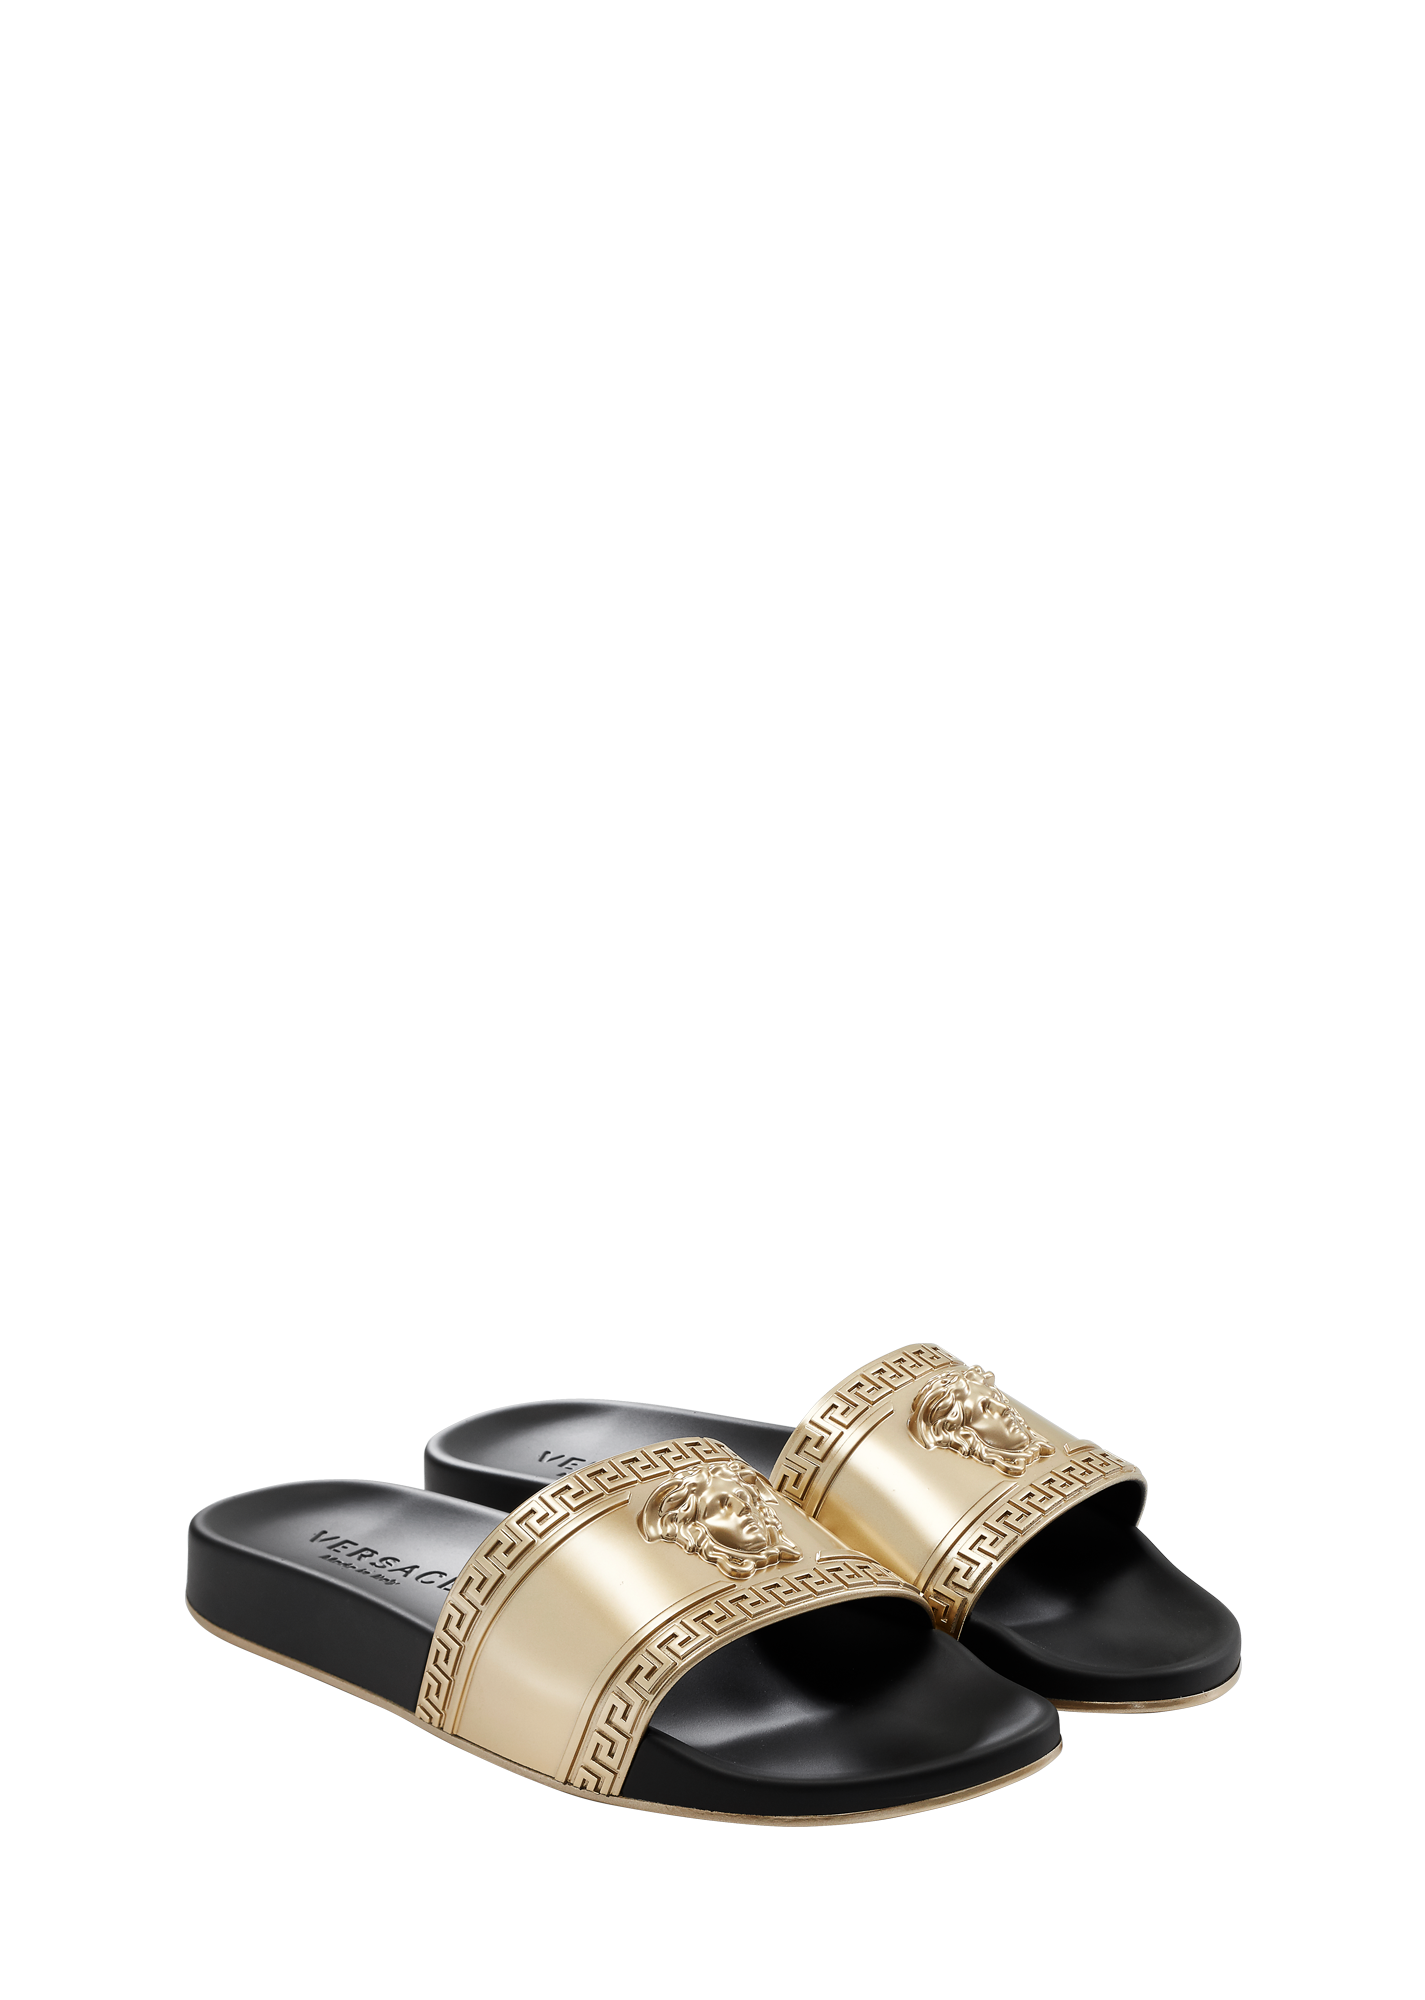 09859fff11c0f0 Medusa Head Beach Slides - gold Sandals